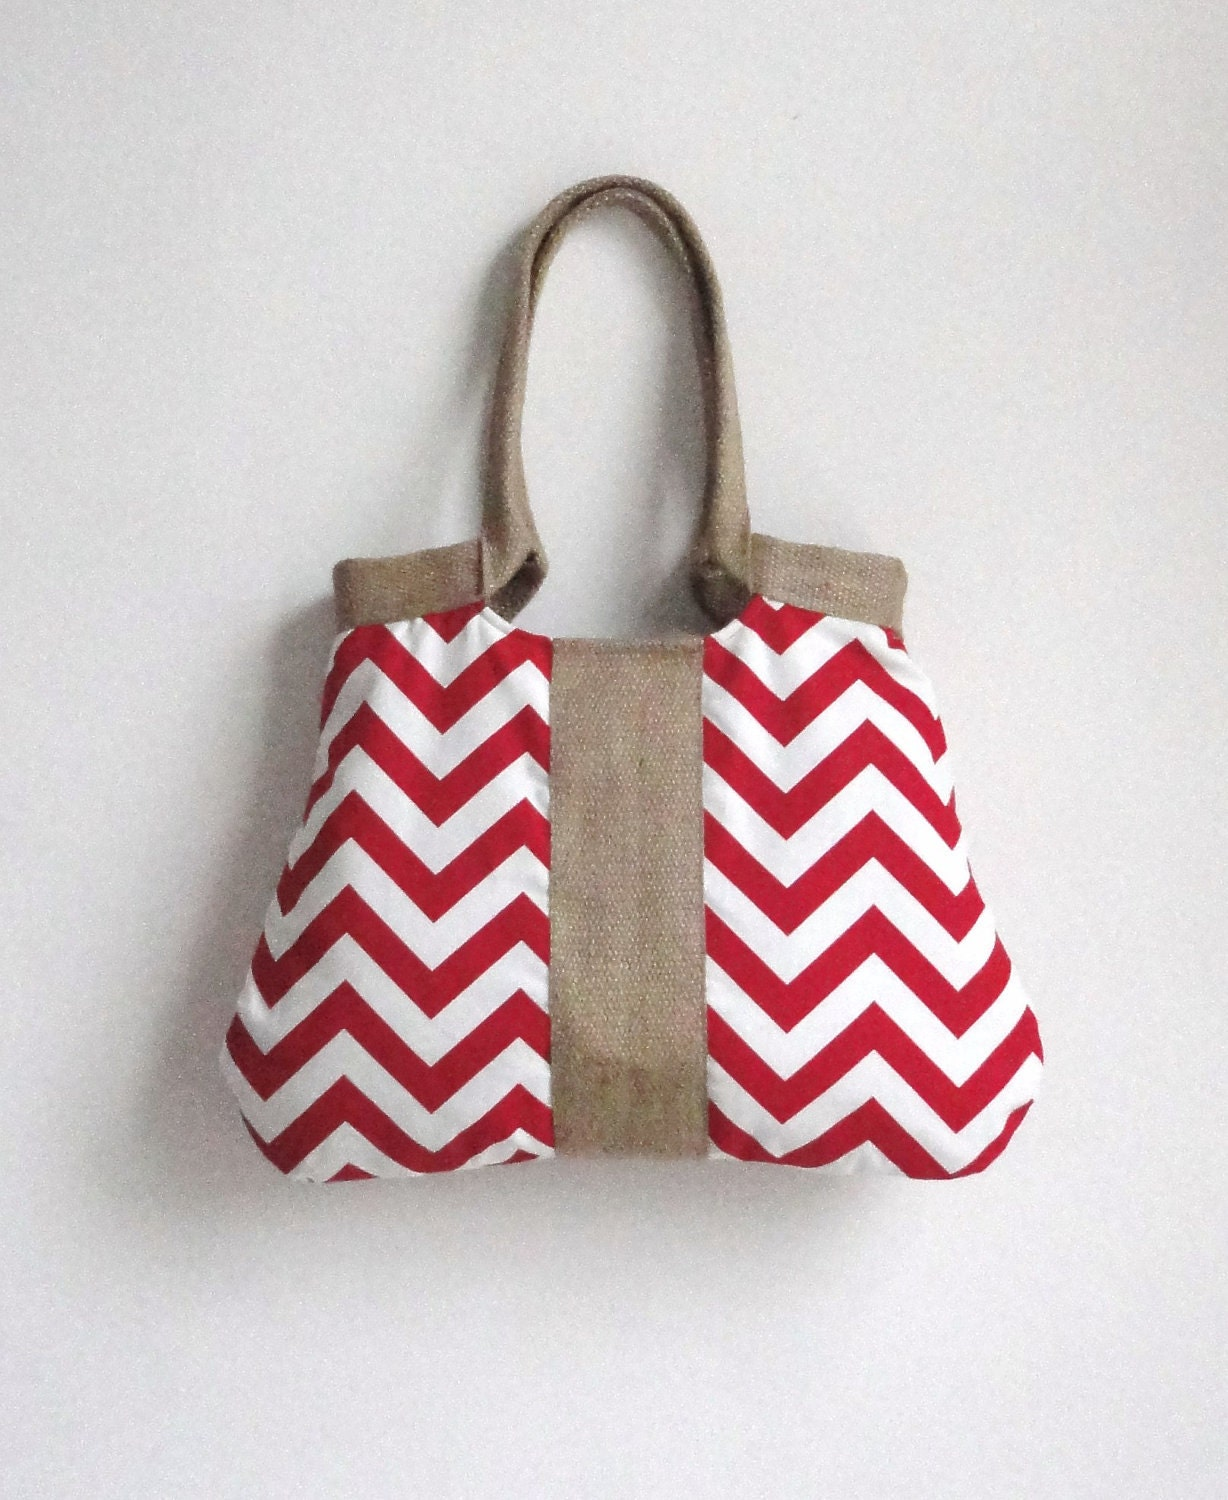 Red chevron tote bag with burlap valentine